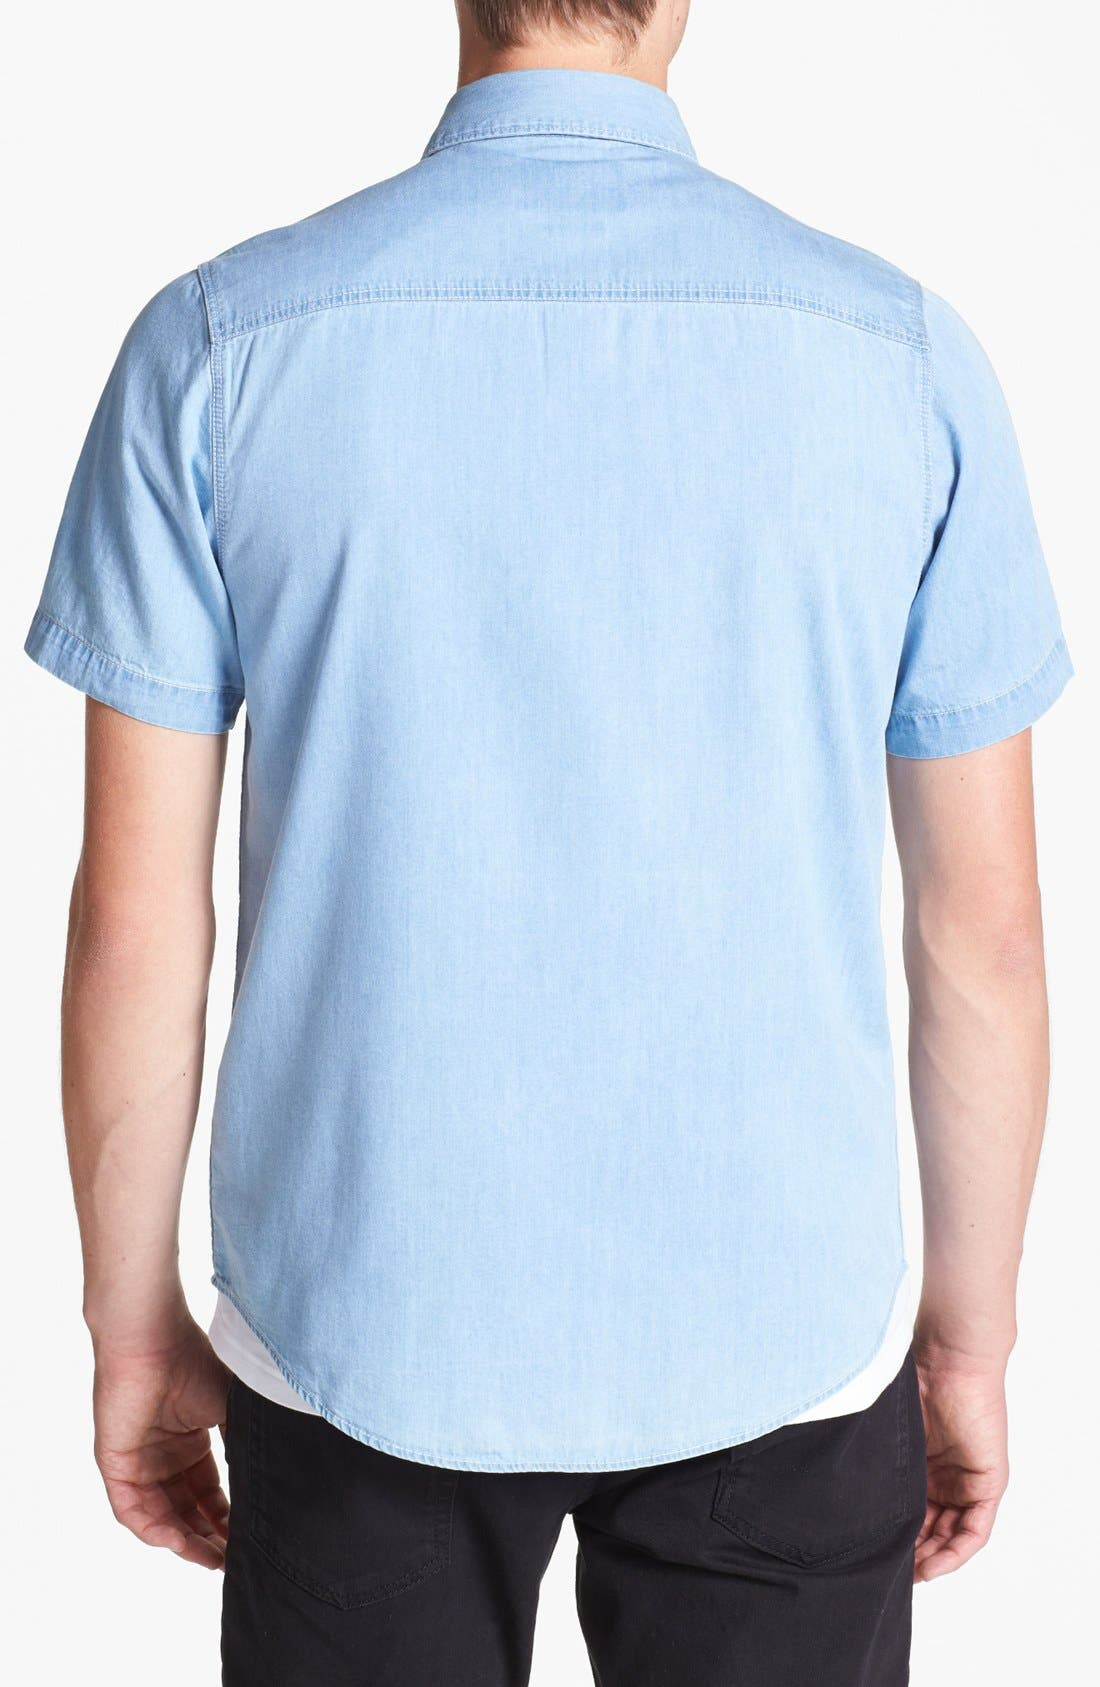 Alternate Image 2  - Topman Short Sleeve Denim Shirt